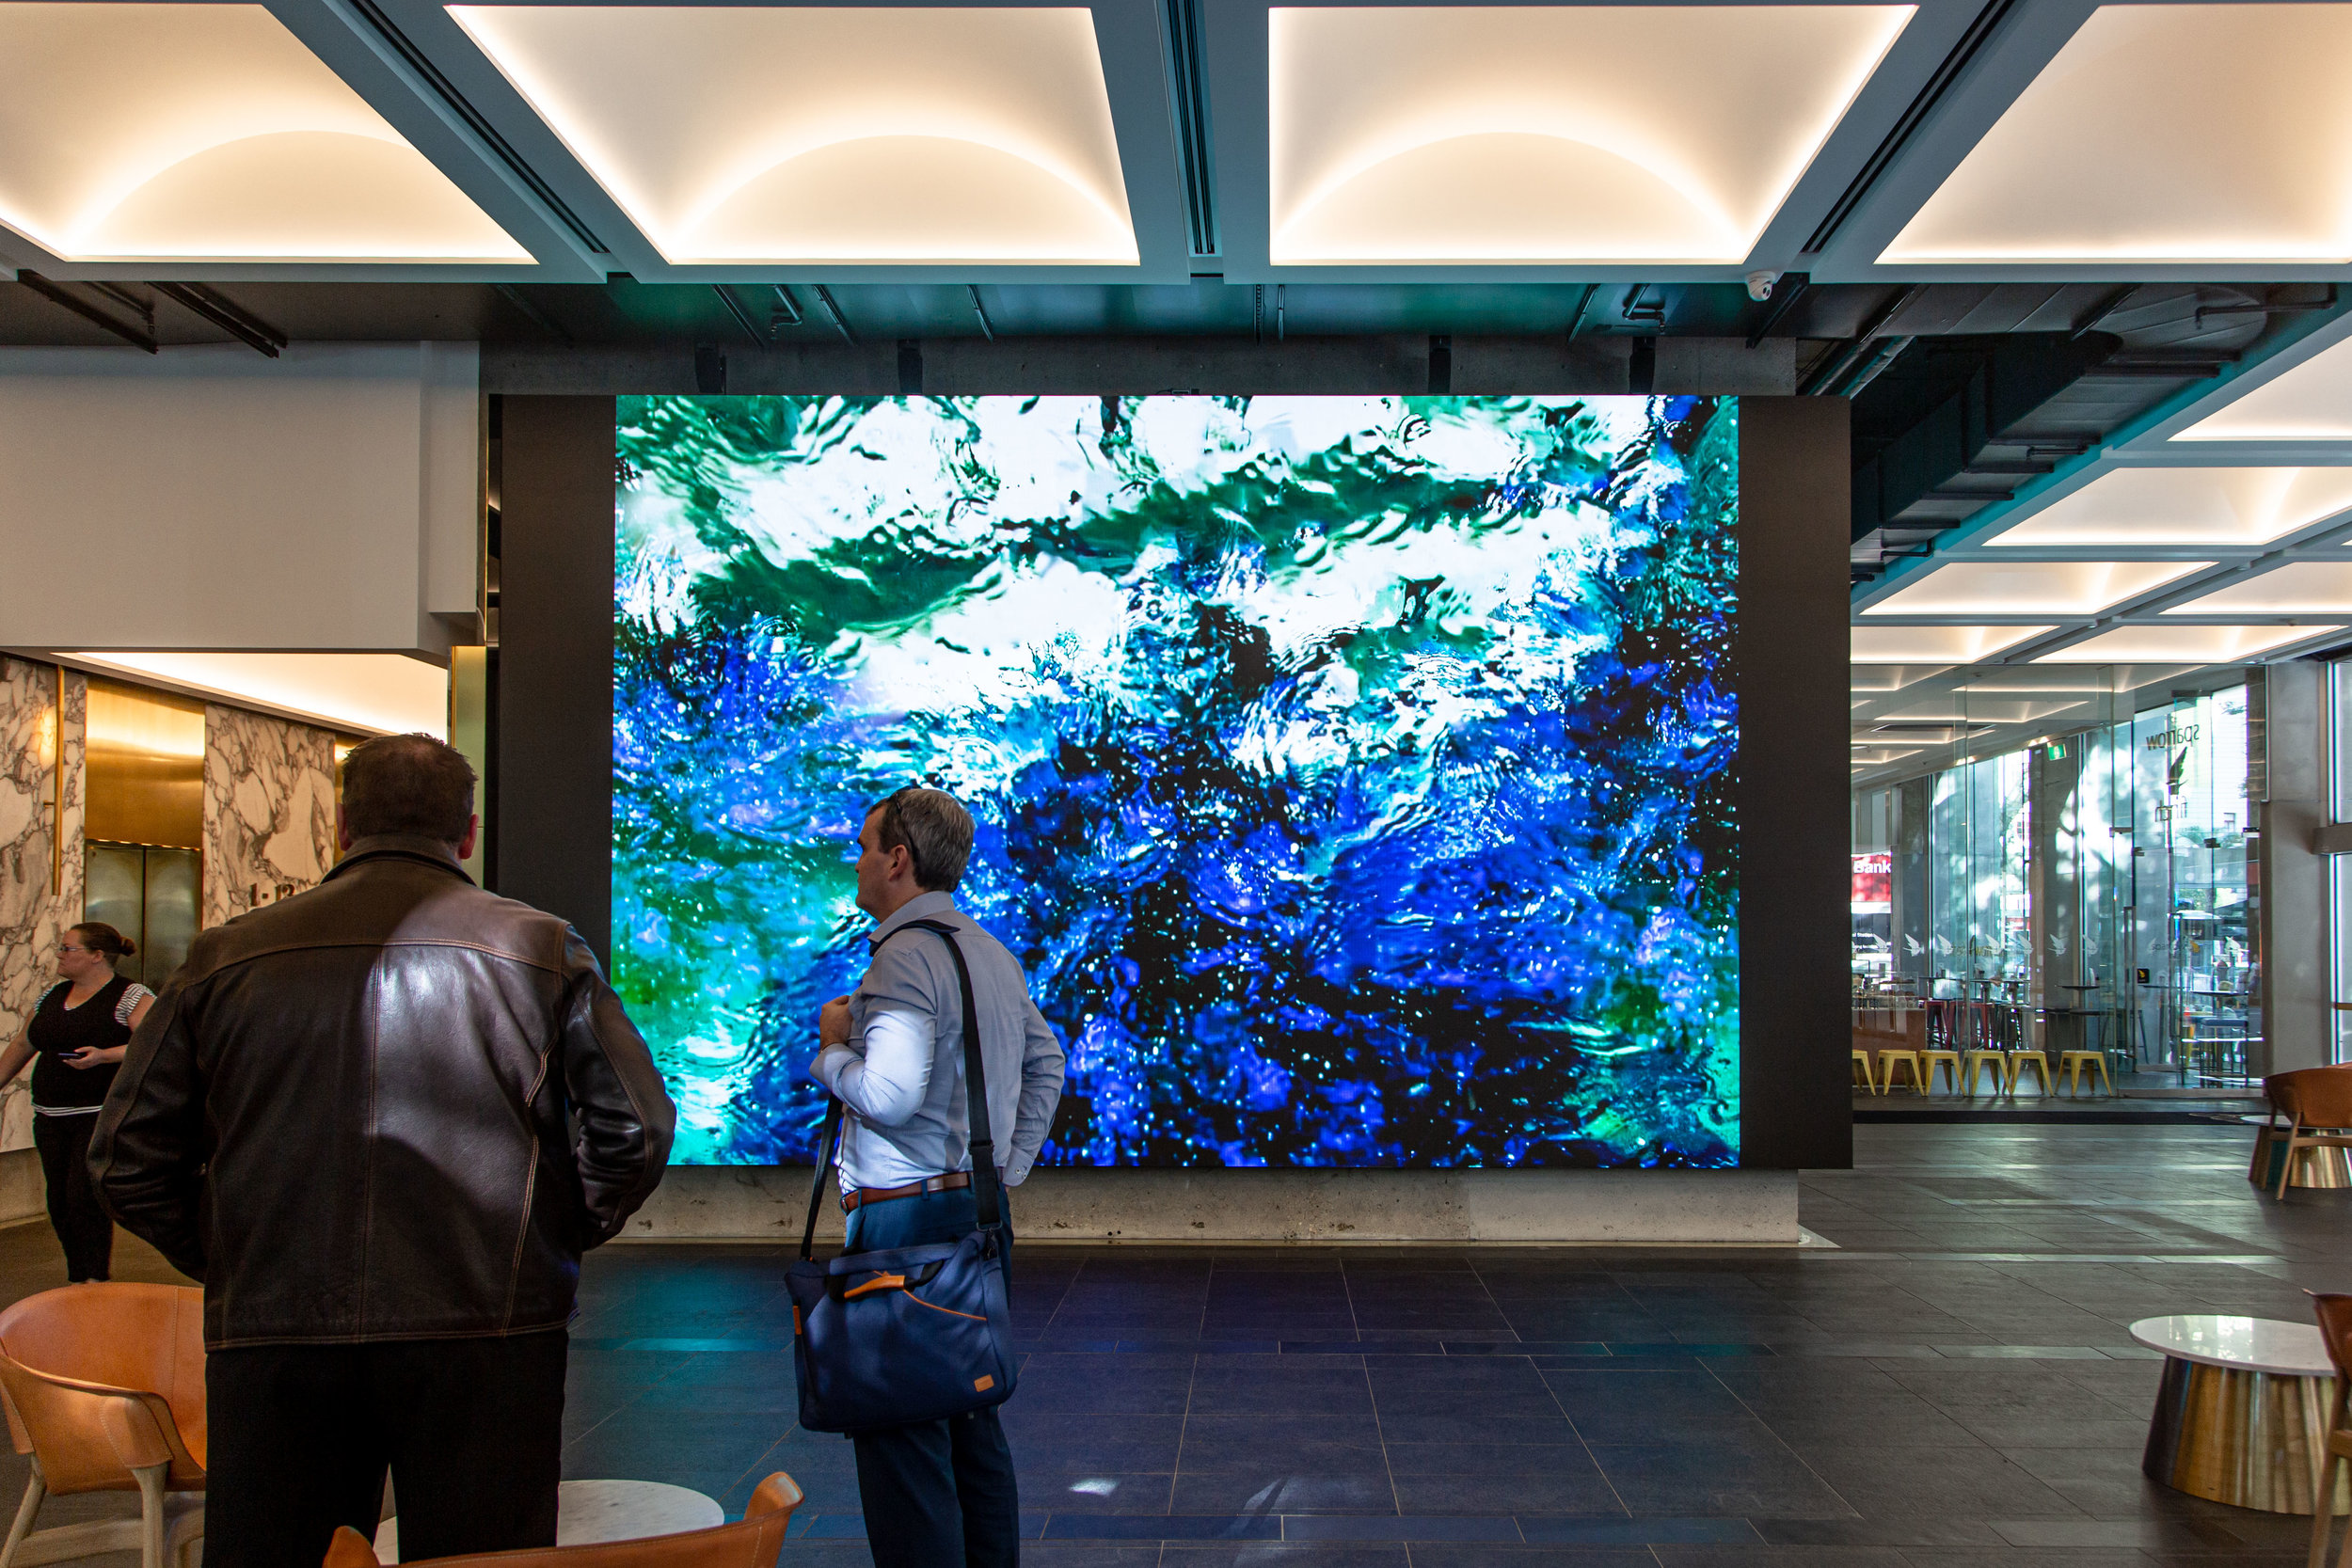 Space - Ocean Continuum, at 100 Creek Street. Image credit: Art Pharmacy Consulting / Anwyn Howarth.